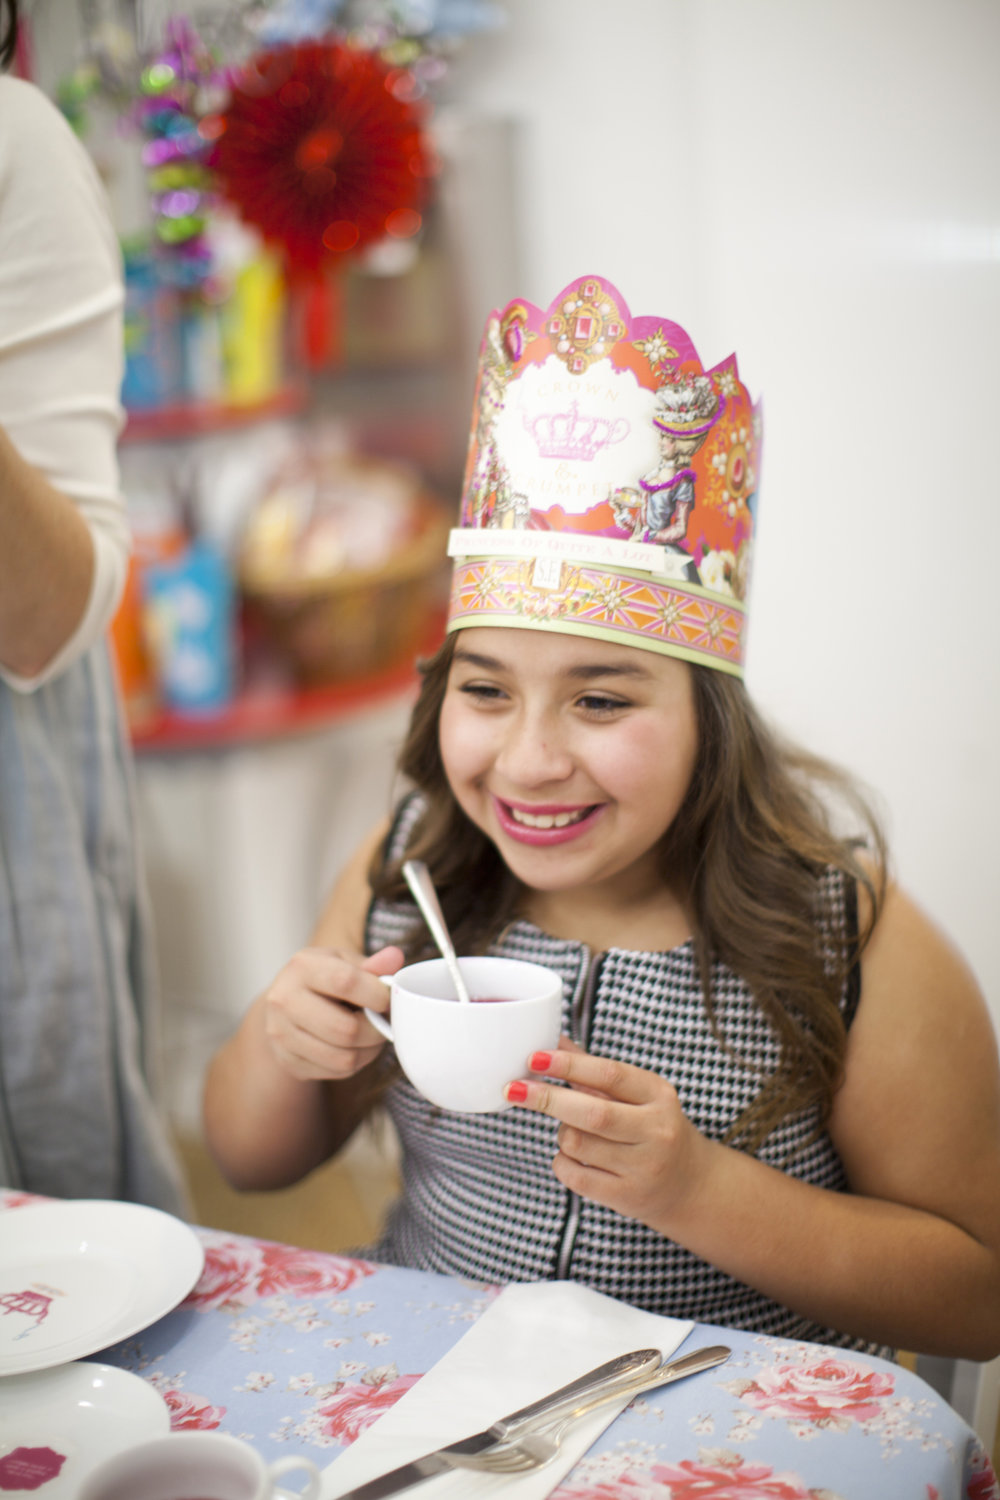 sophia_tea_party_crown_and_crumpet_san_francisco_photography_056.jpg